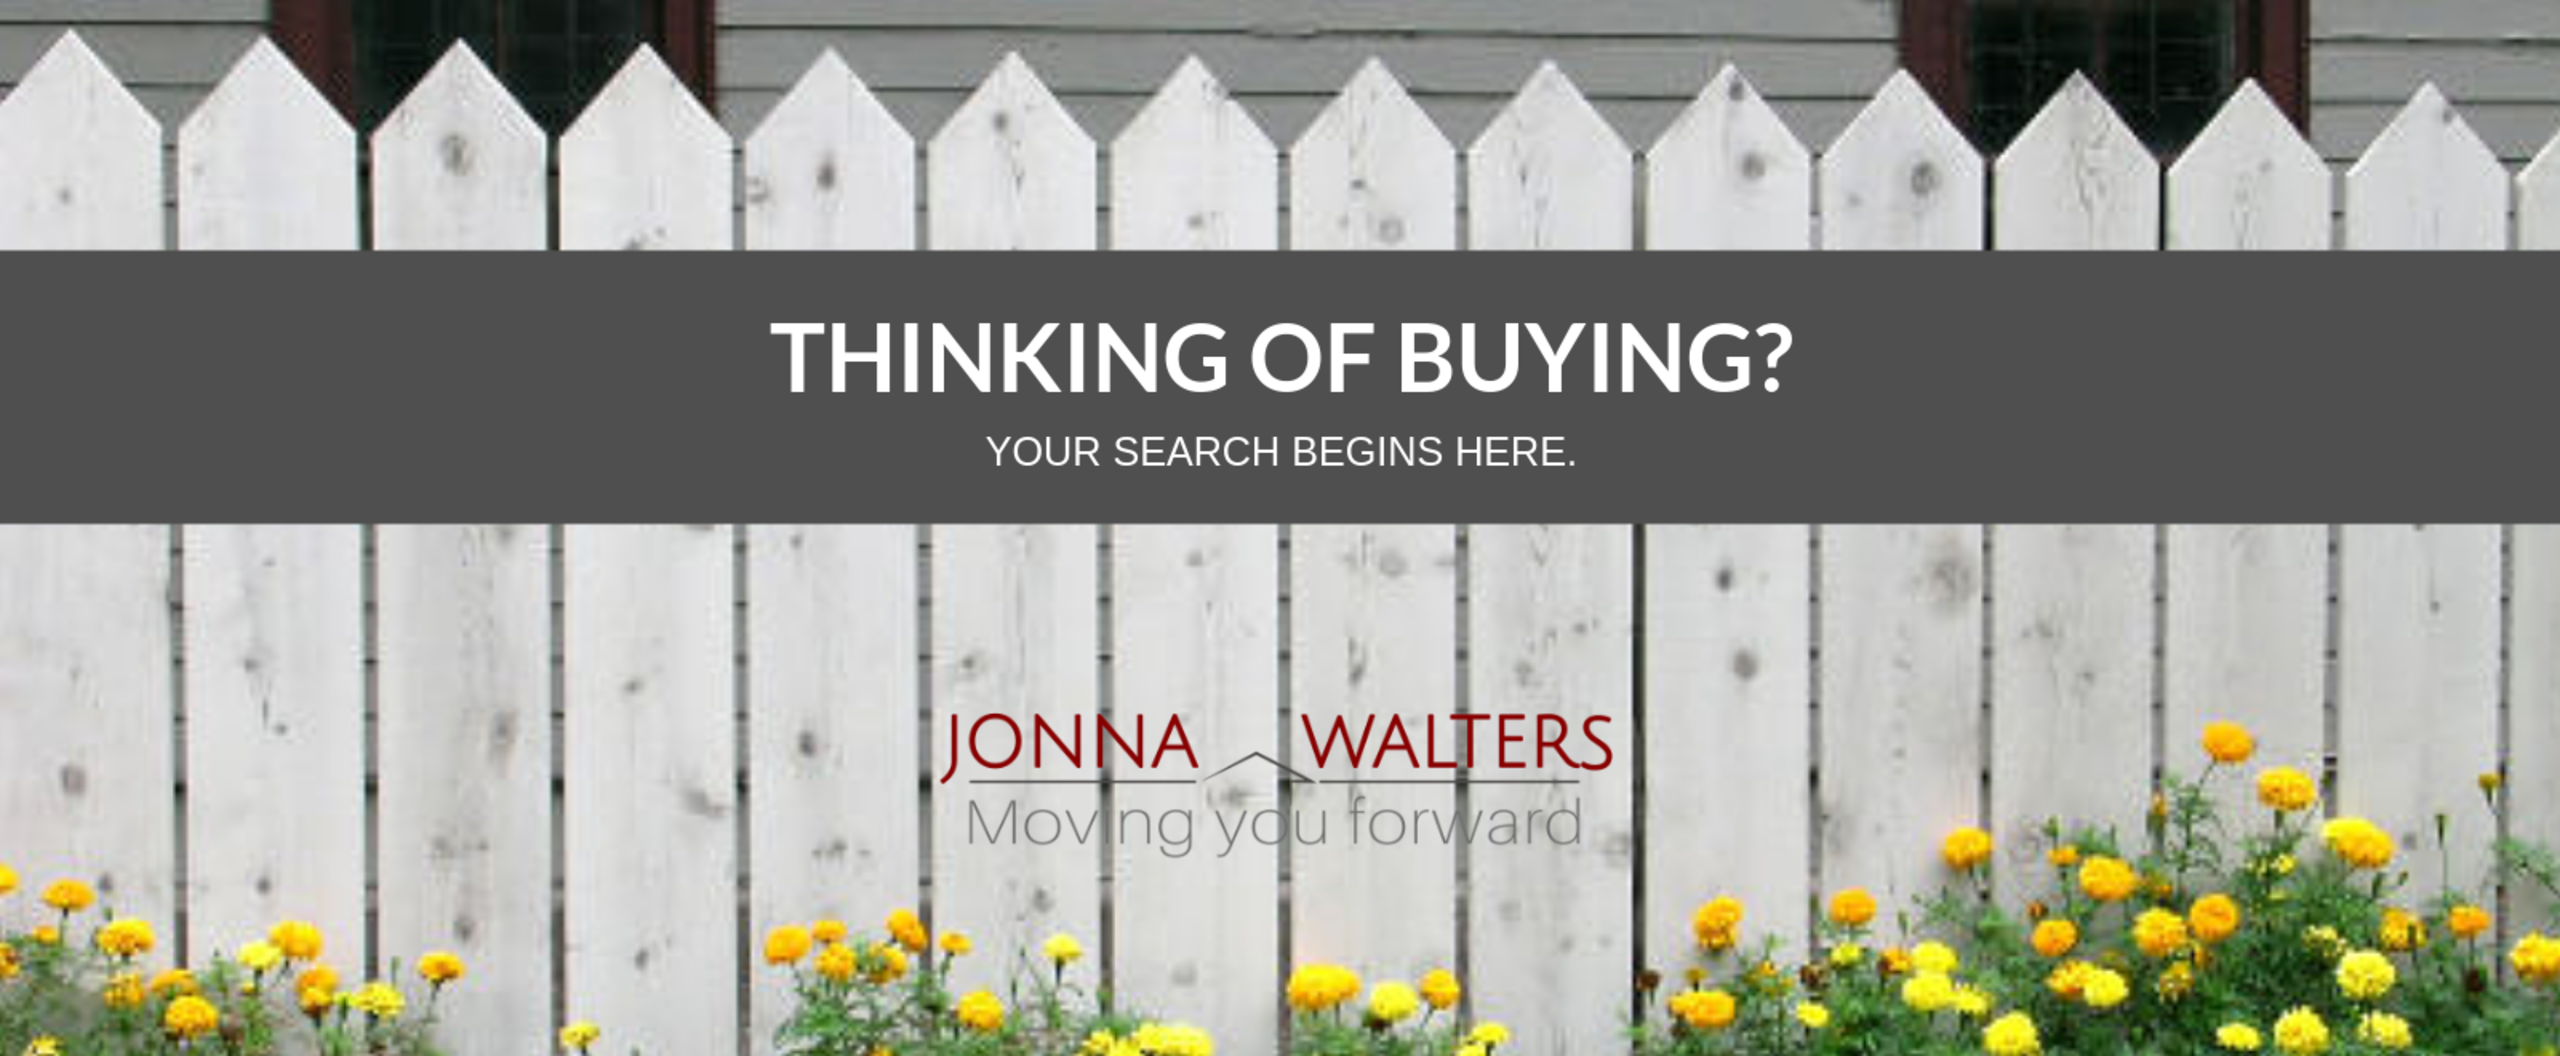 Call Jonna at 563.580.7522 today!  Click Here for more information.